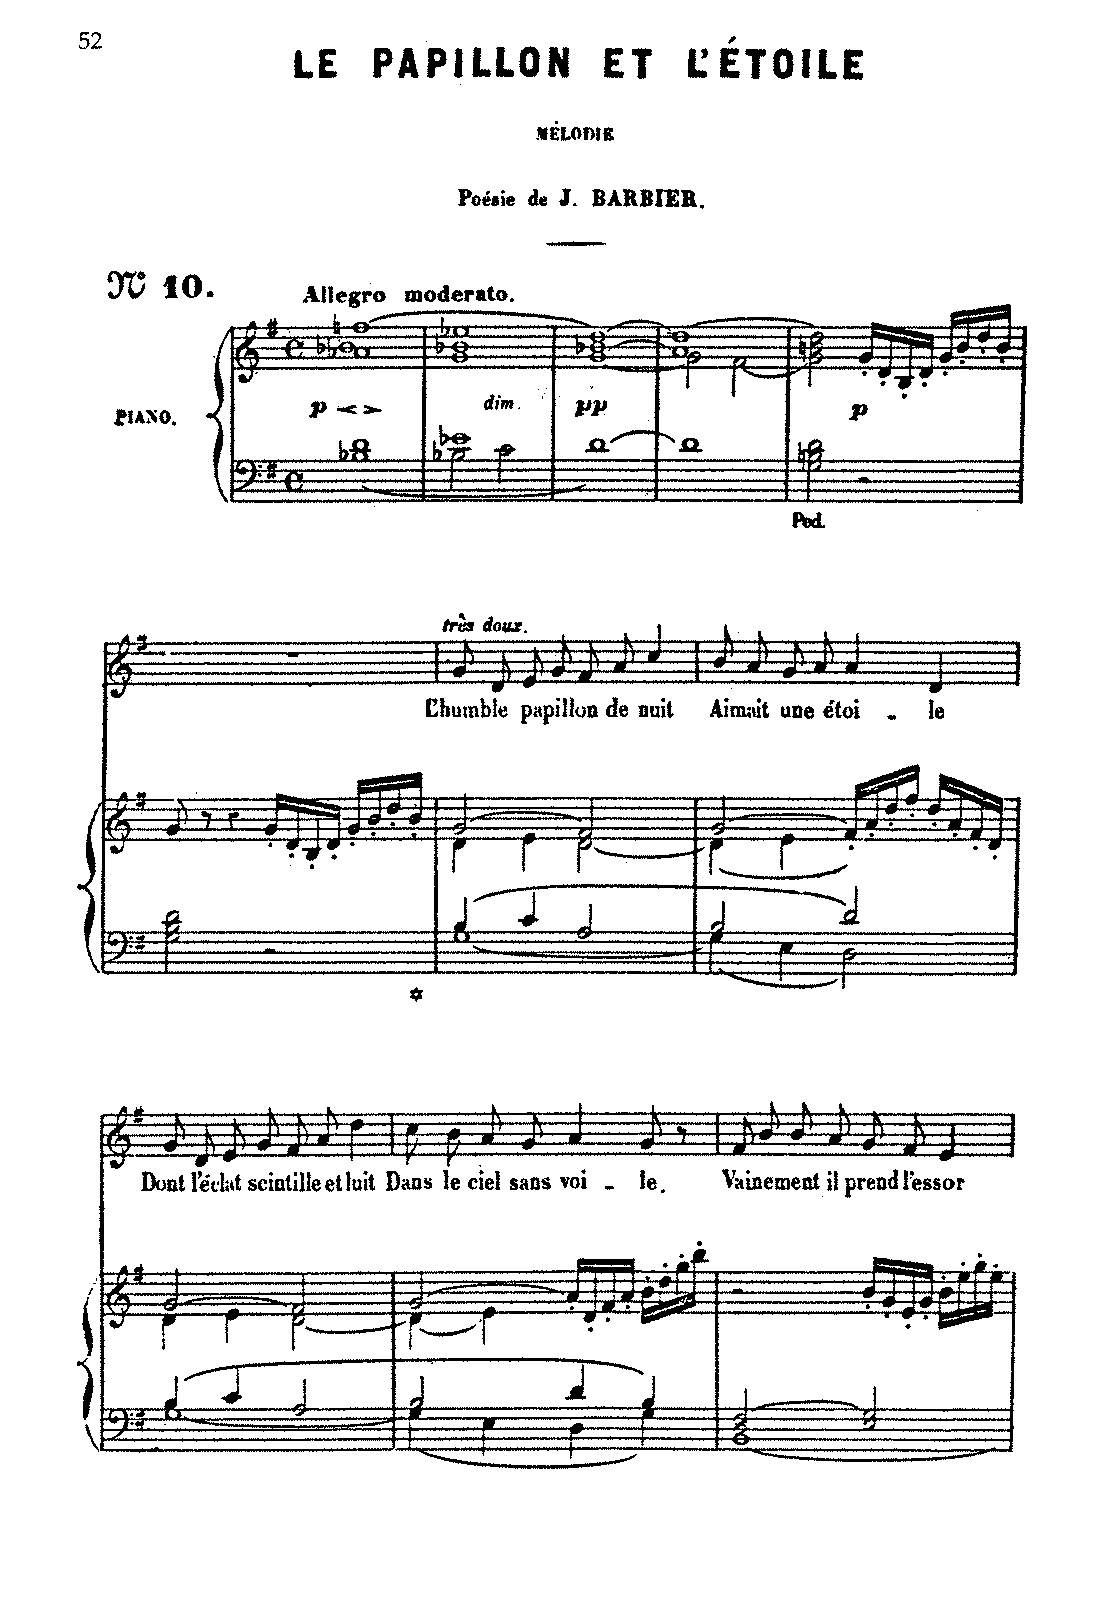 PMLP132258-Saint-Saëns - Le papillon et l'étoile (voice and piano).pdf